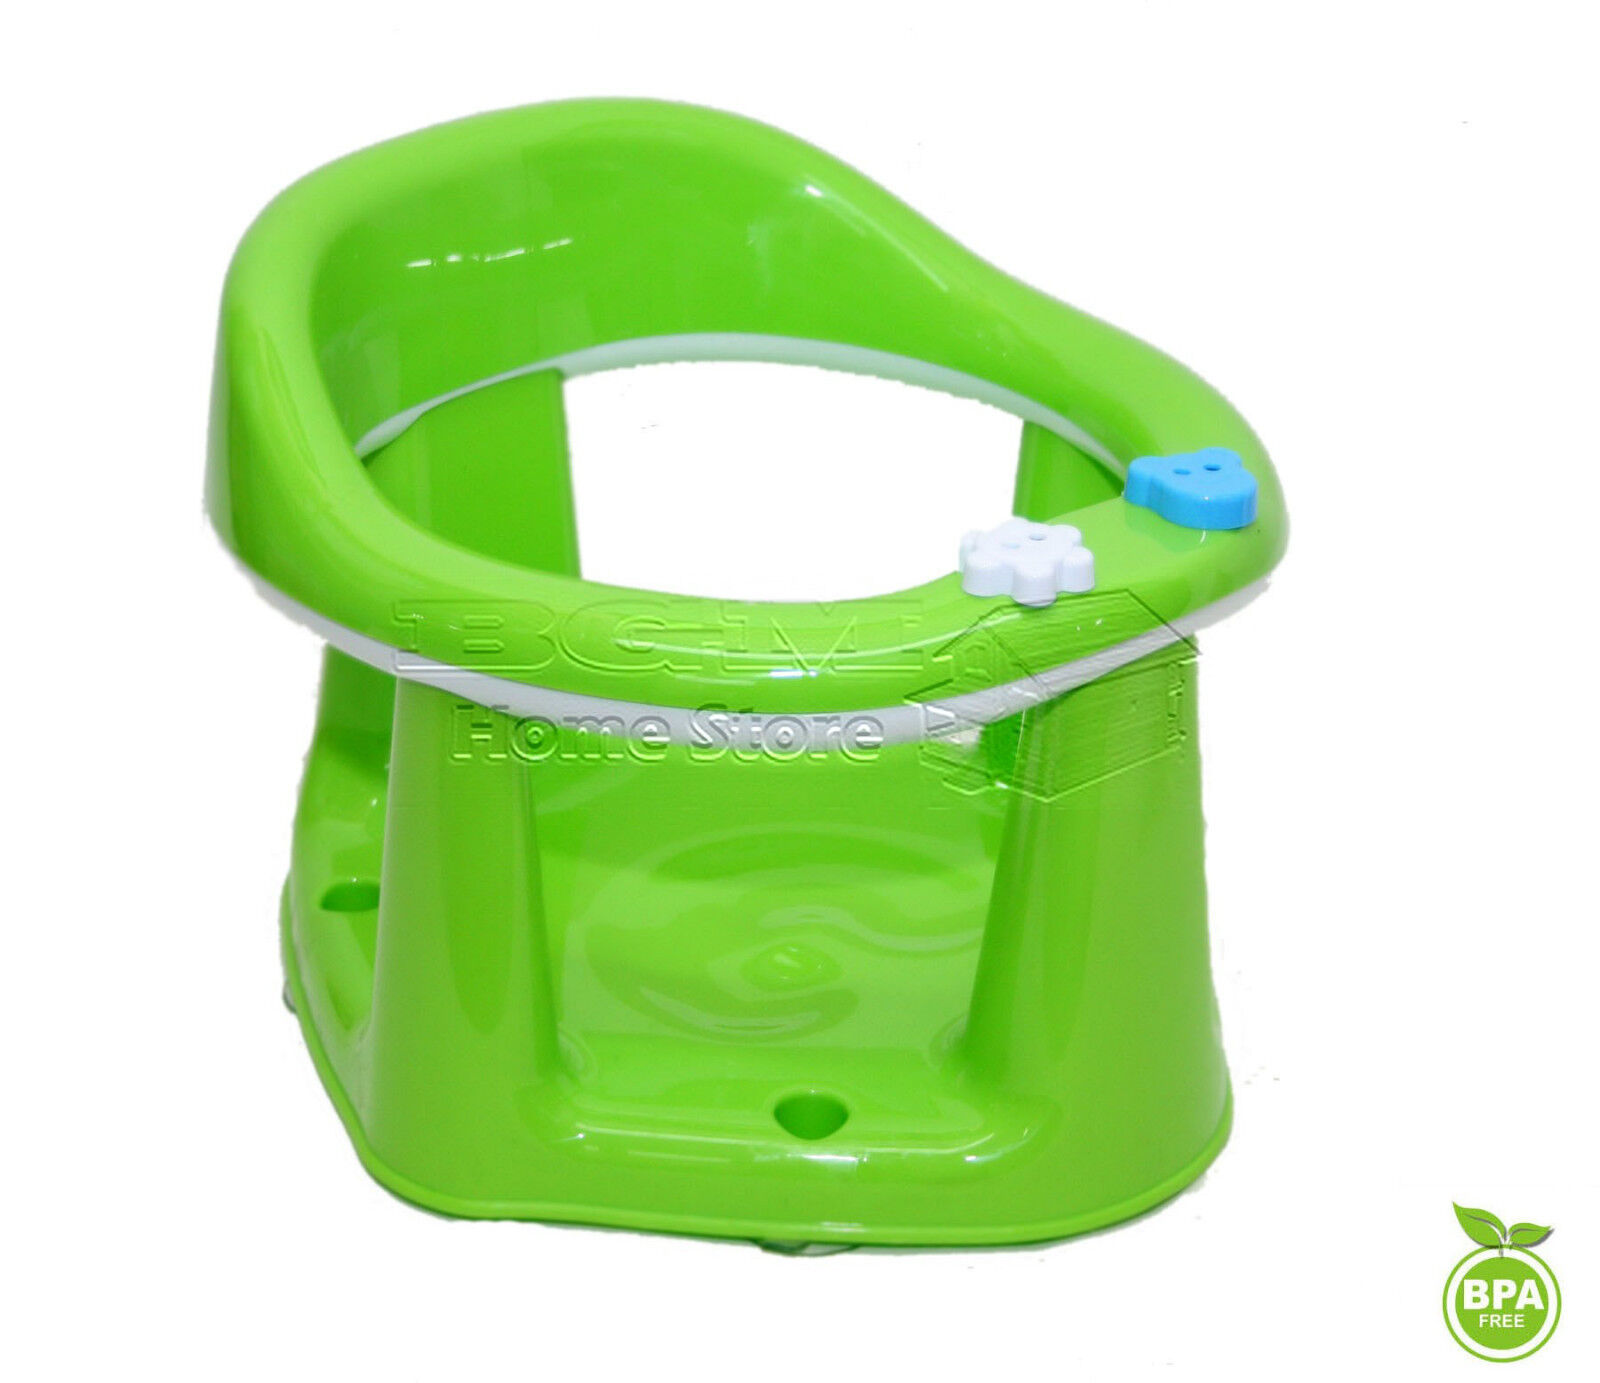 Green Dunya Plastik Green Baby Toddler Safety Potty Training Adaptor Toilet Seat With Handles